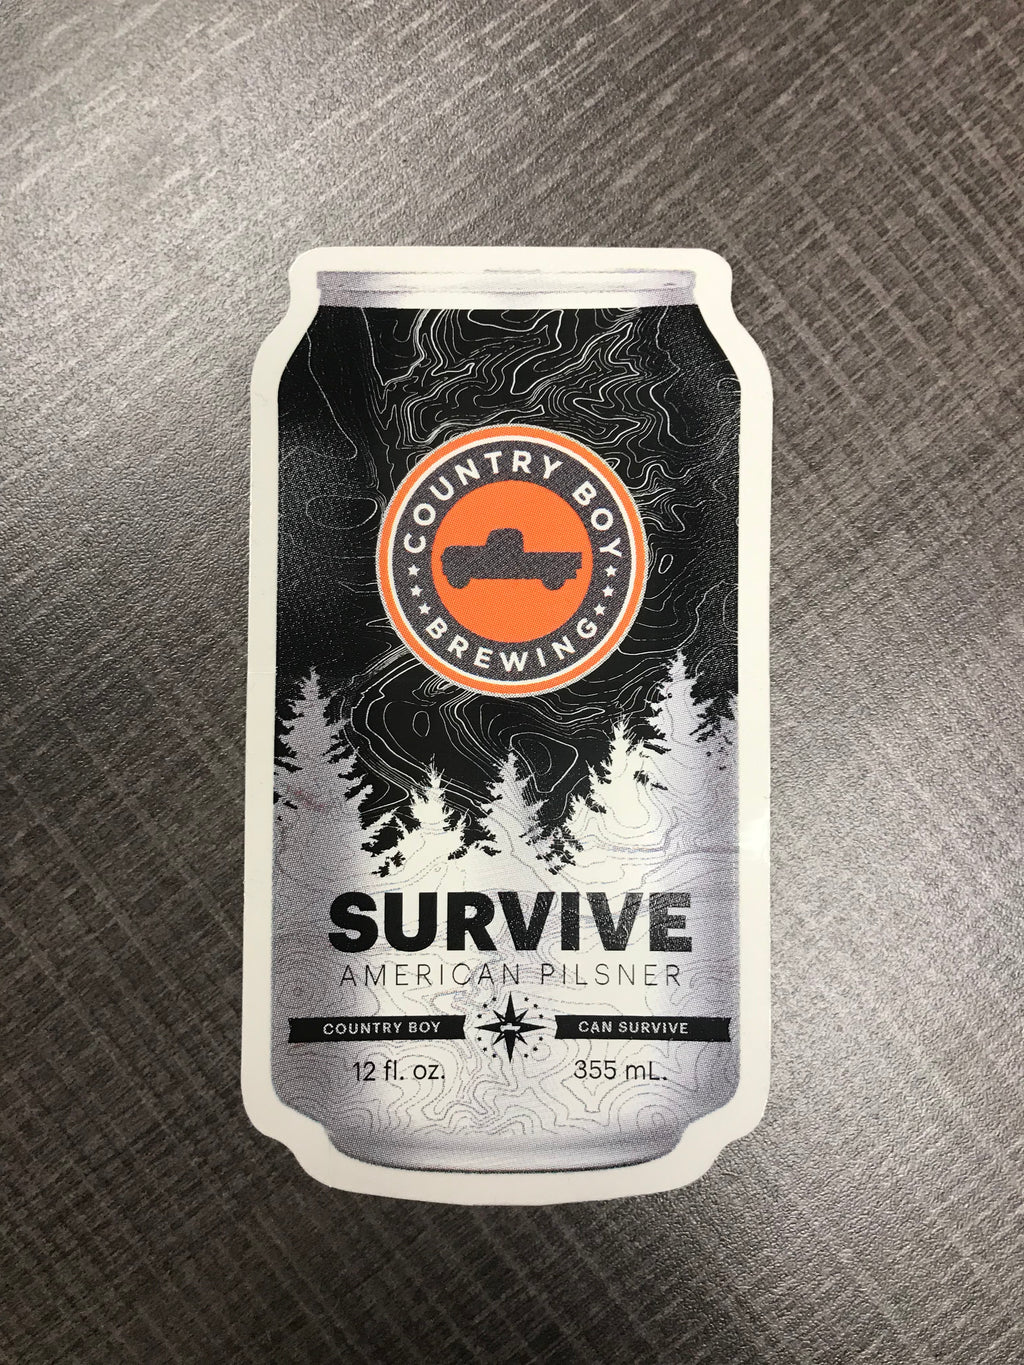 Vinyl Sticker - Survive